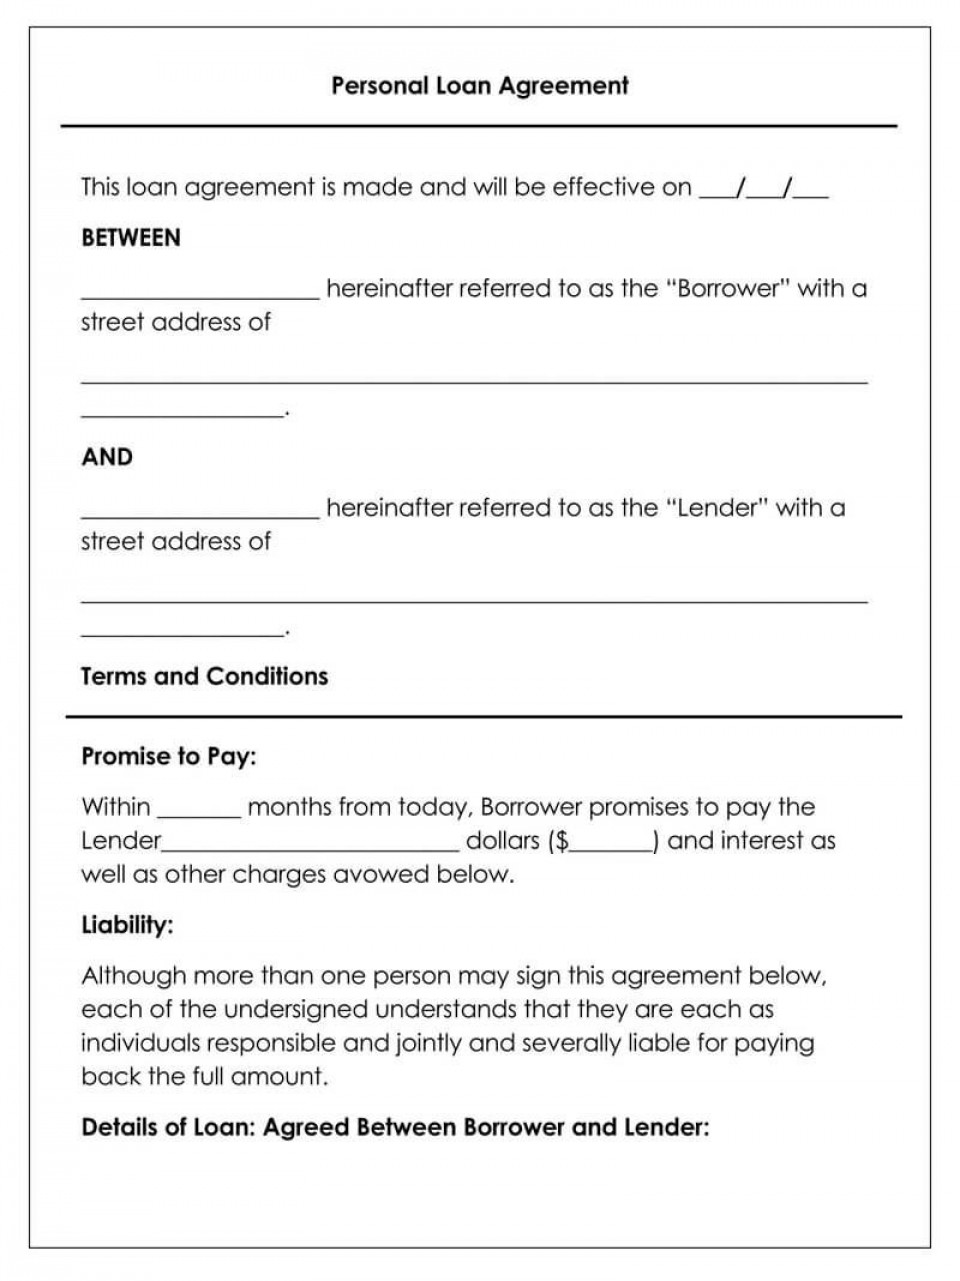 010 Stunning Family Loan Agreement Template Sample  Free Uk Friend And Simple Australia960